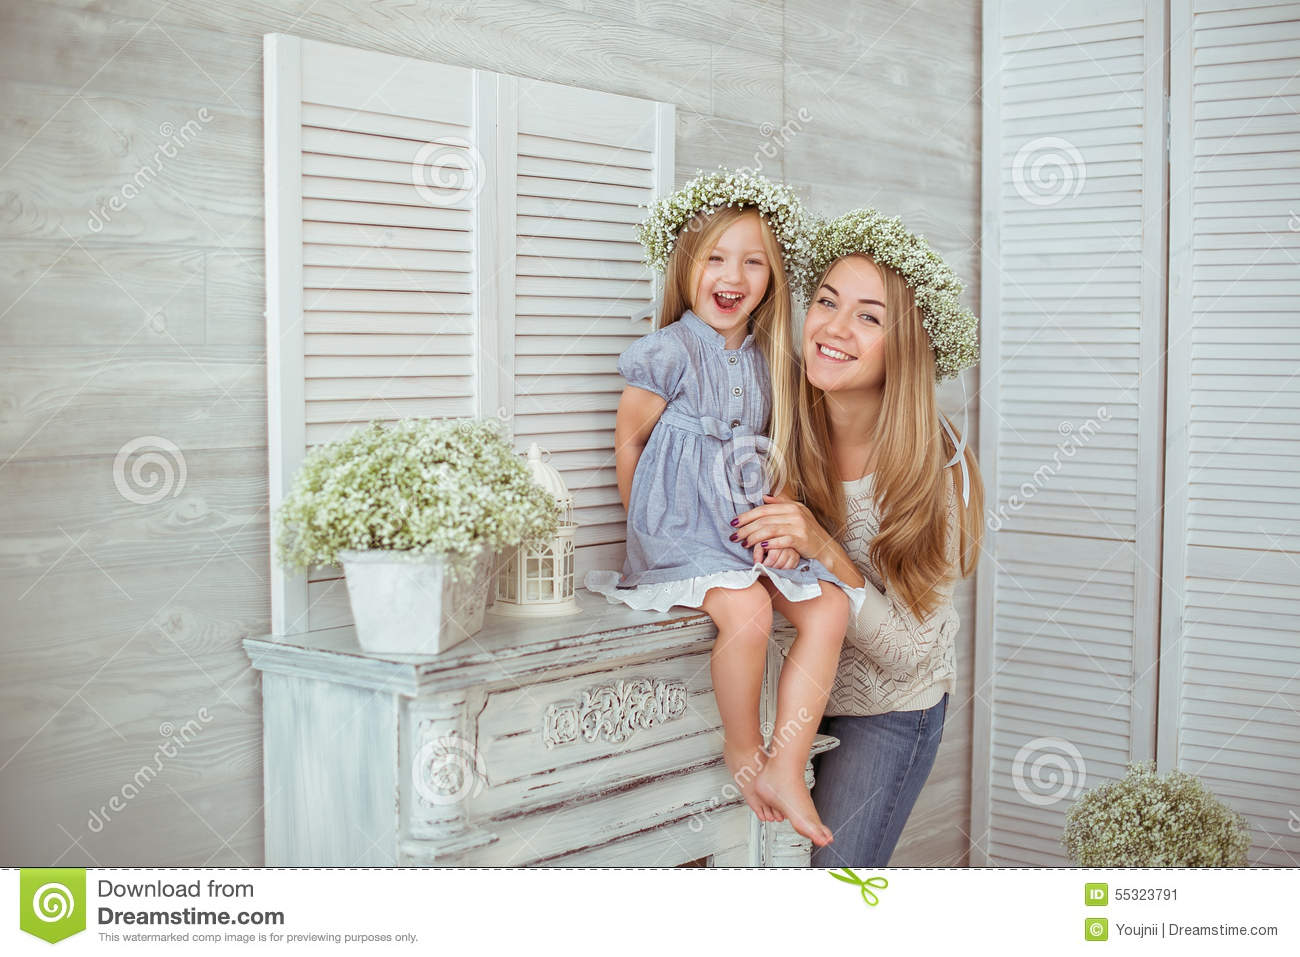 A happy mother and her daughter are excited